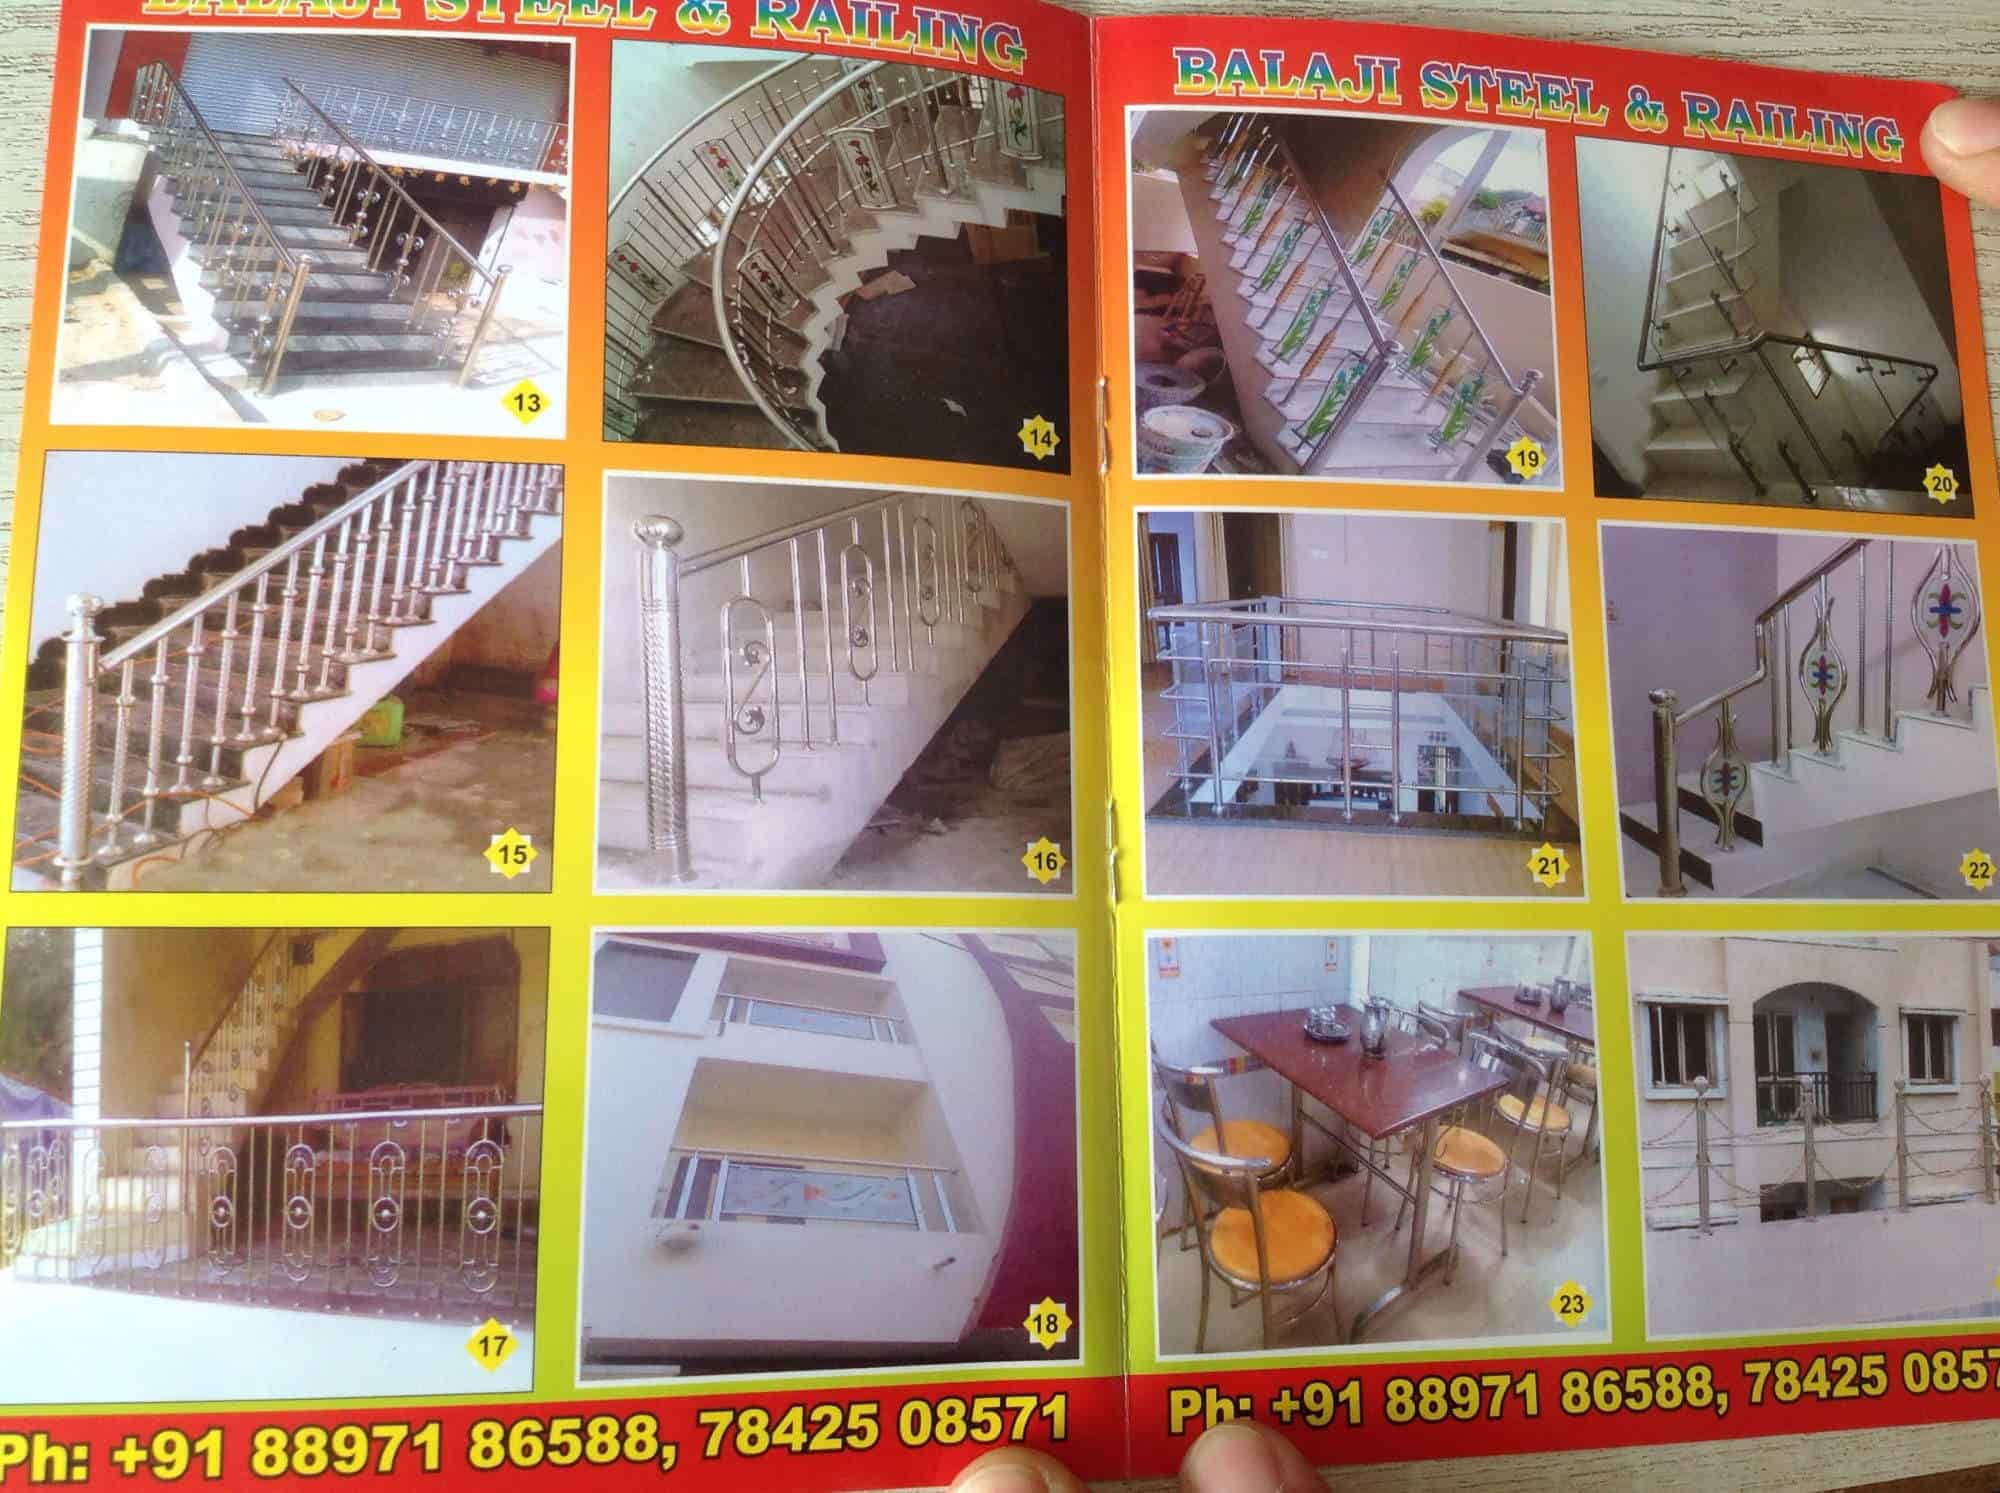 Balaji Steel & Railing, Atmakur Road - Aluminium Railing Dealers in